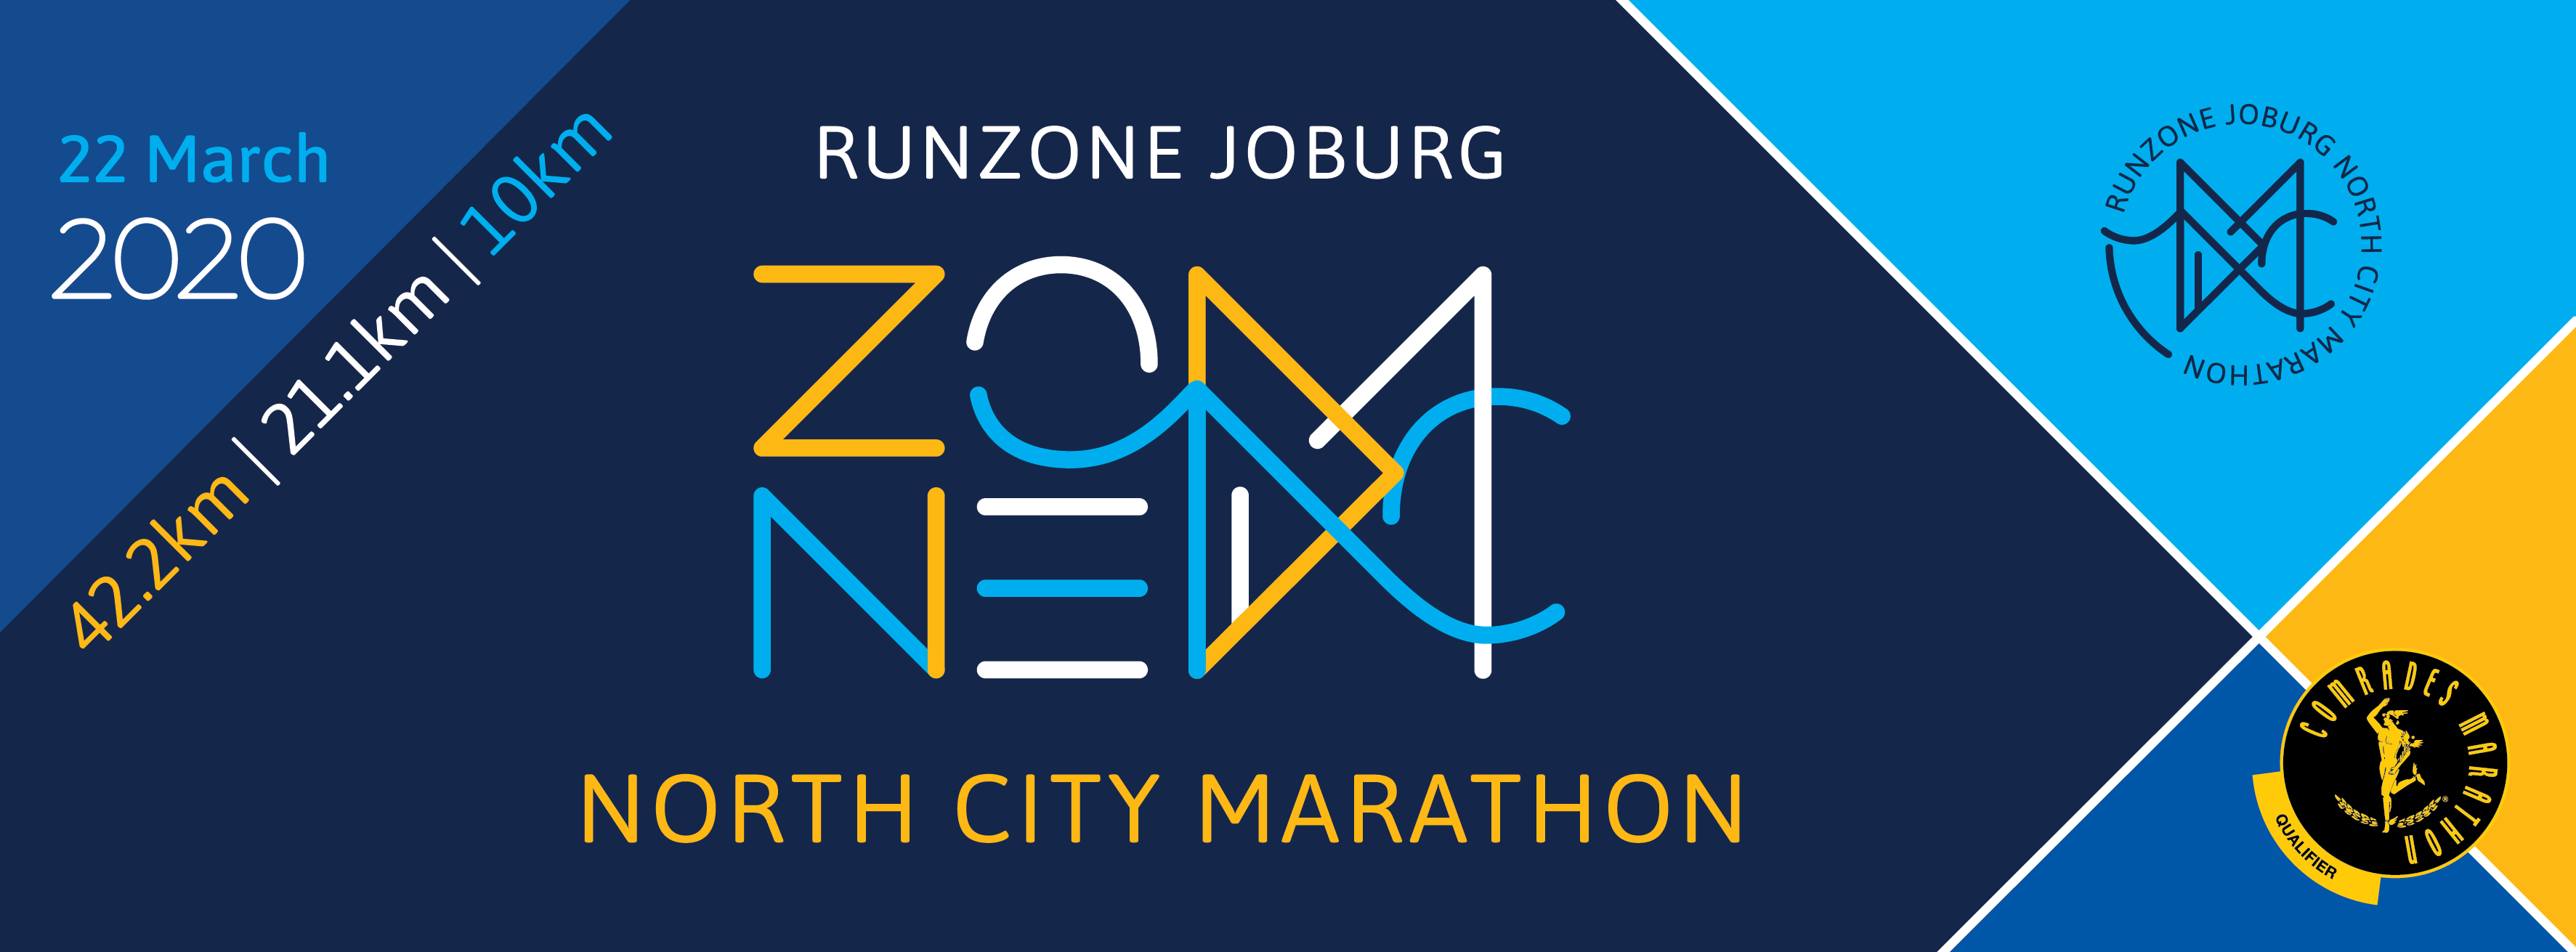 JOBURG NORTH CITY MARATHON